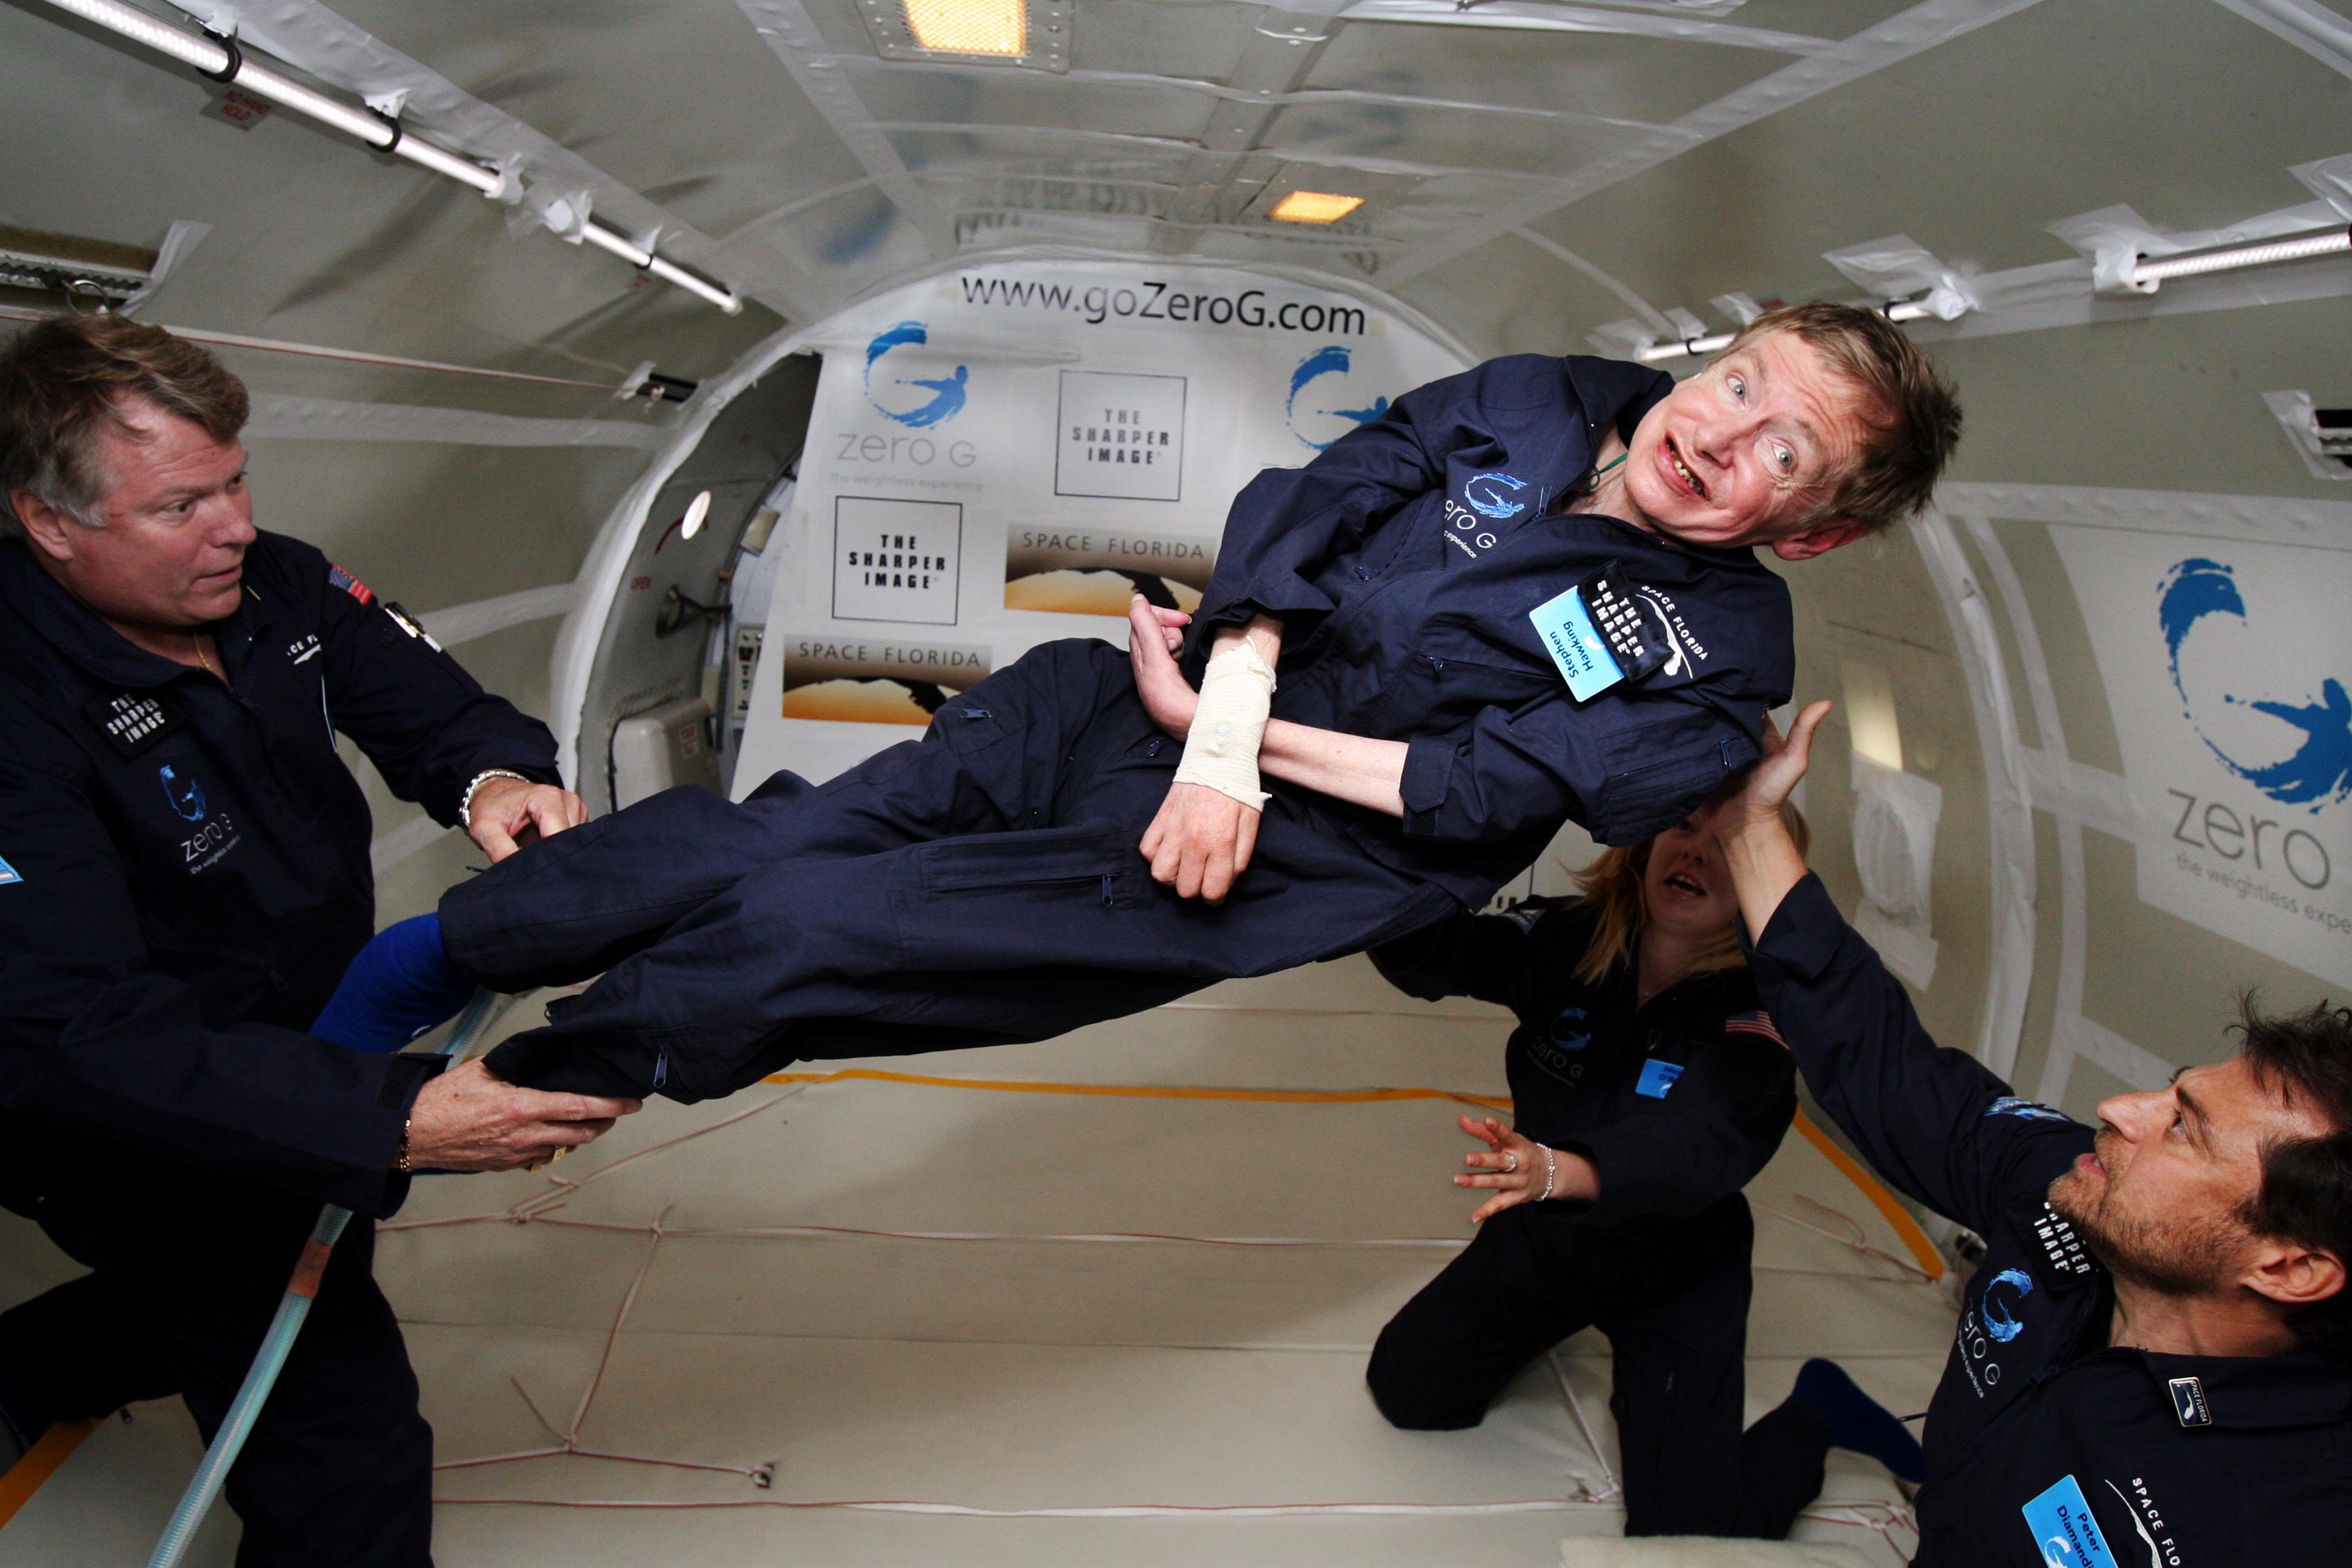 Physicist Stephen Hawking Floating in Zero G with a Smile on His Face